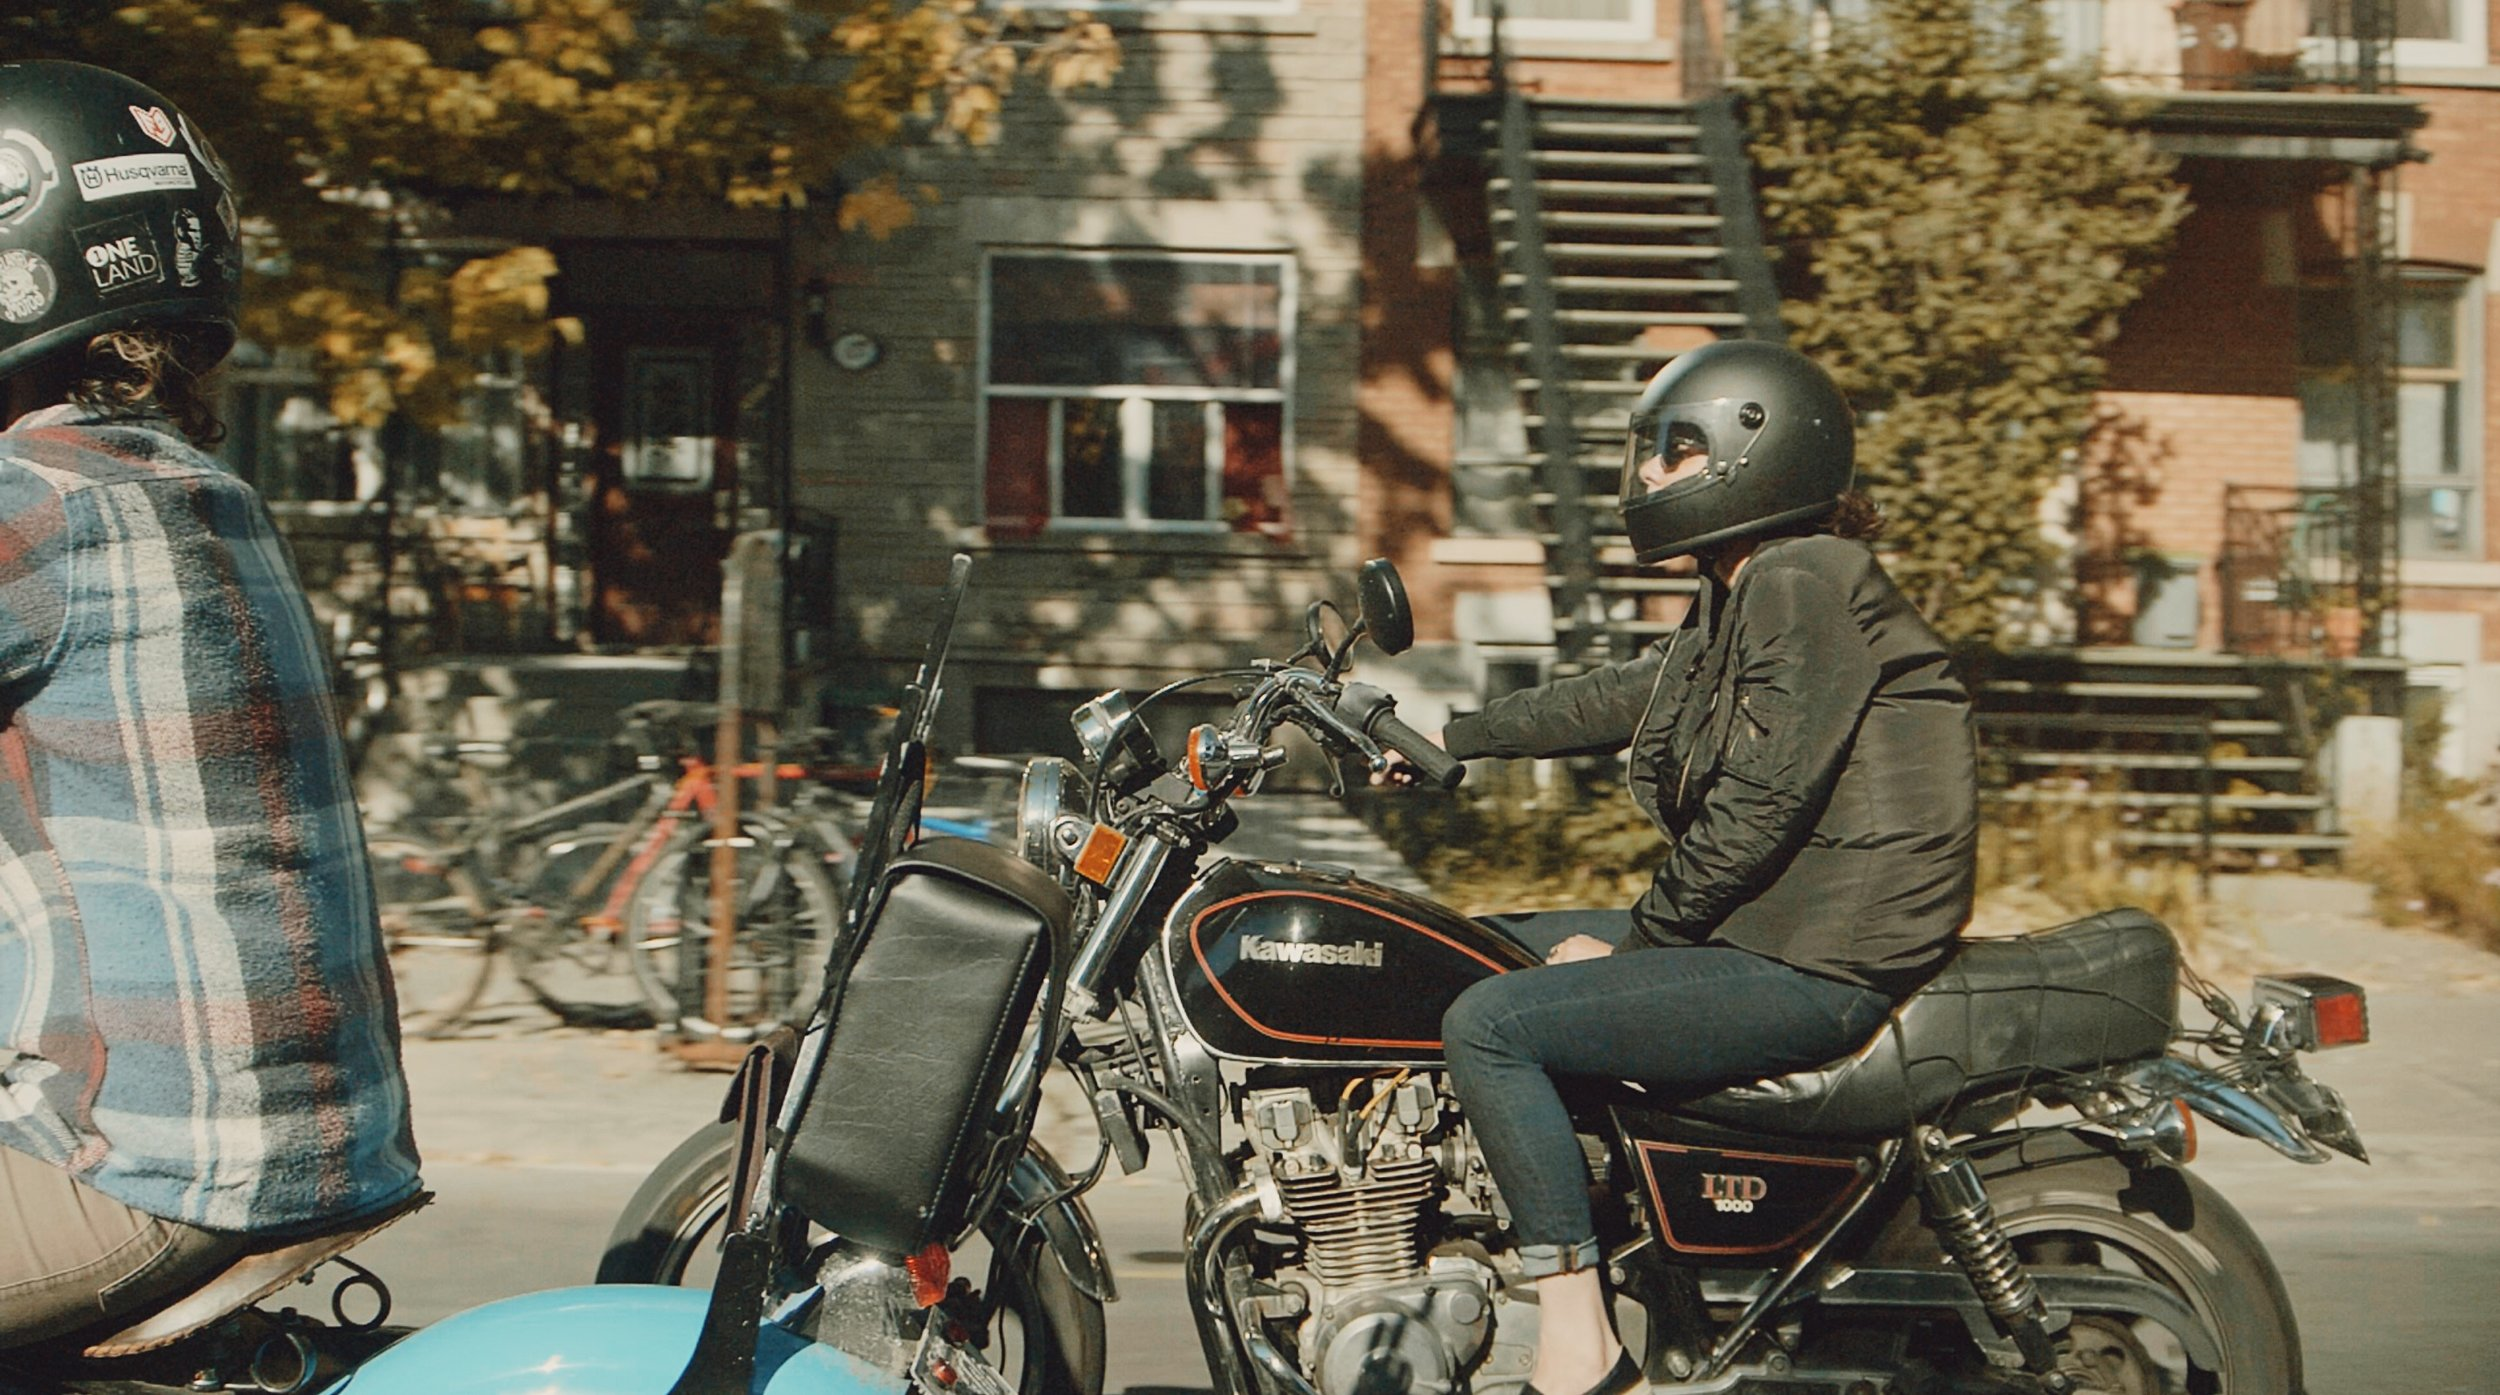 Roxanne's Ride | ONELAND | TheMotoSocialMONTREAL